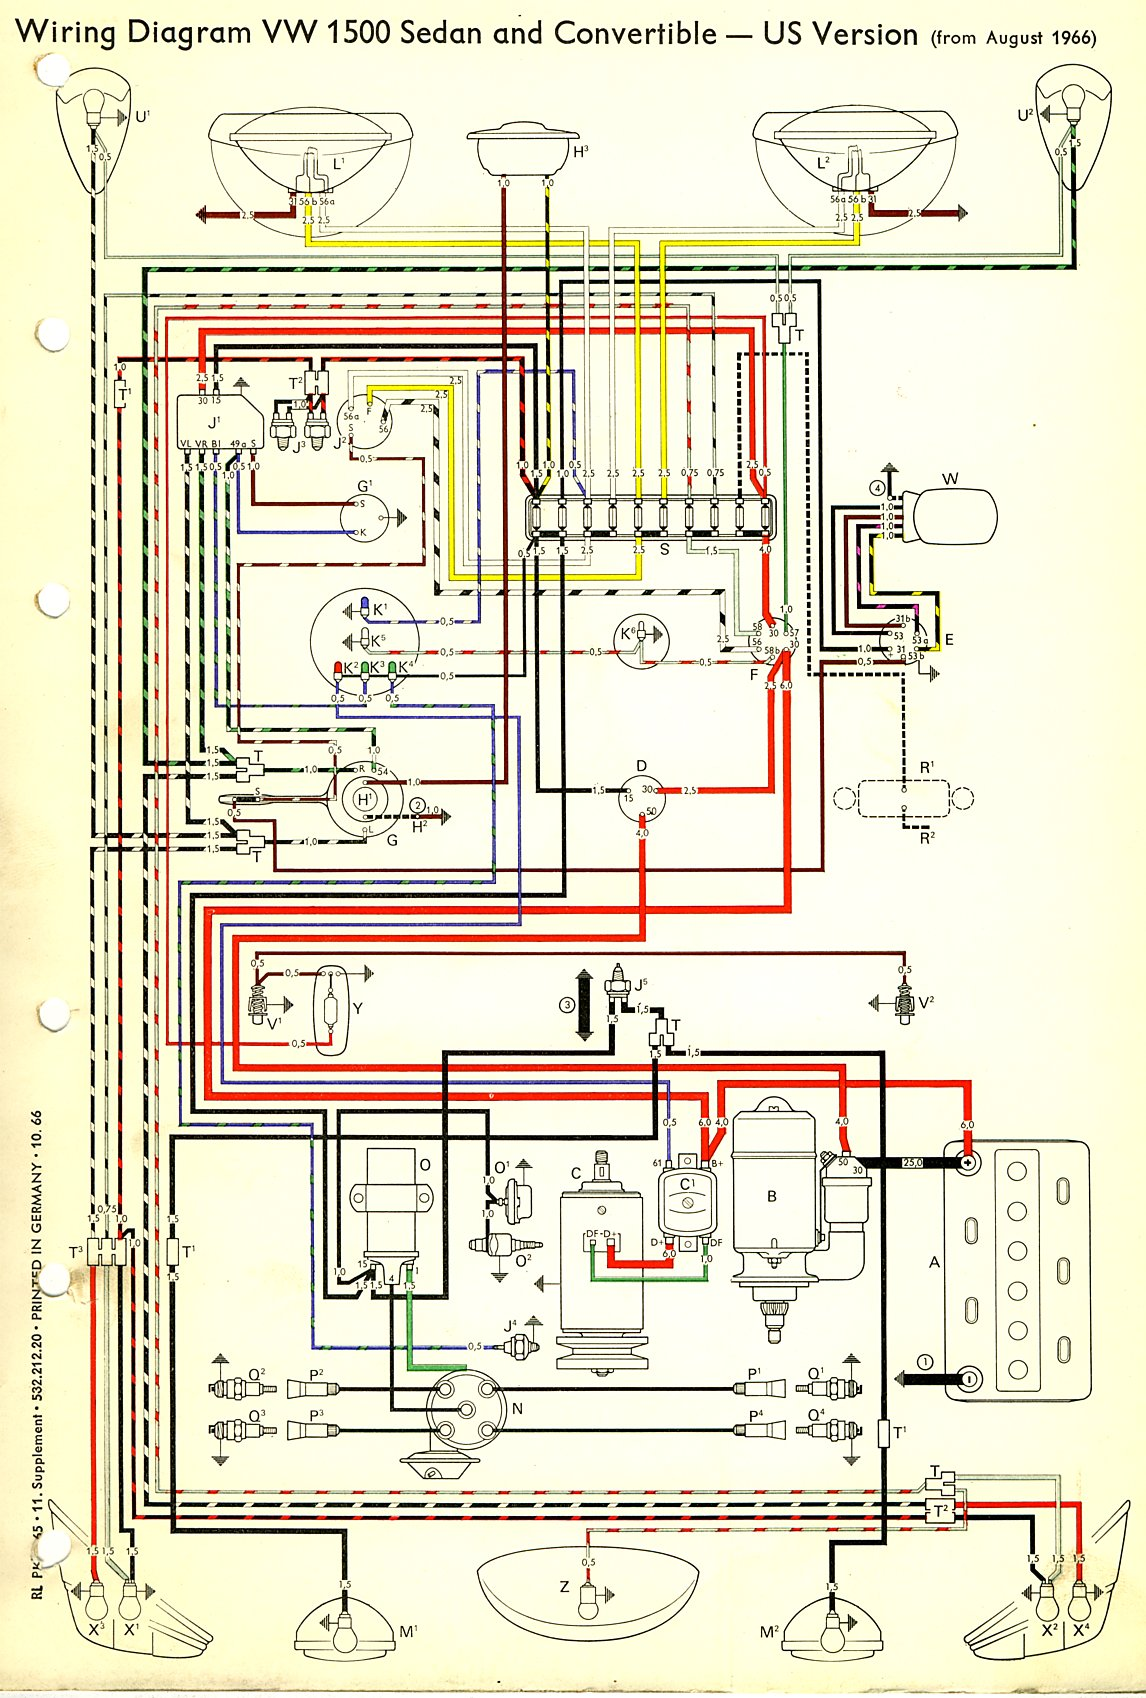 hight resolution of 66 vw wiring diagram 1300 wiring diagram third level 66 ford wiring diagram 66 vw wiring diagram